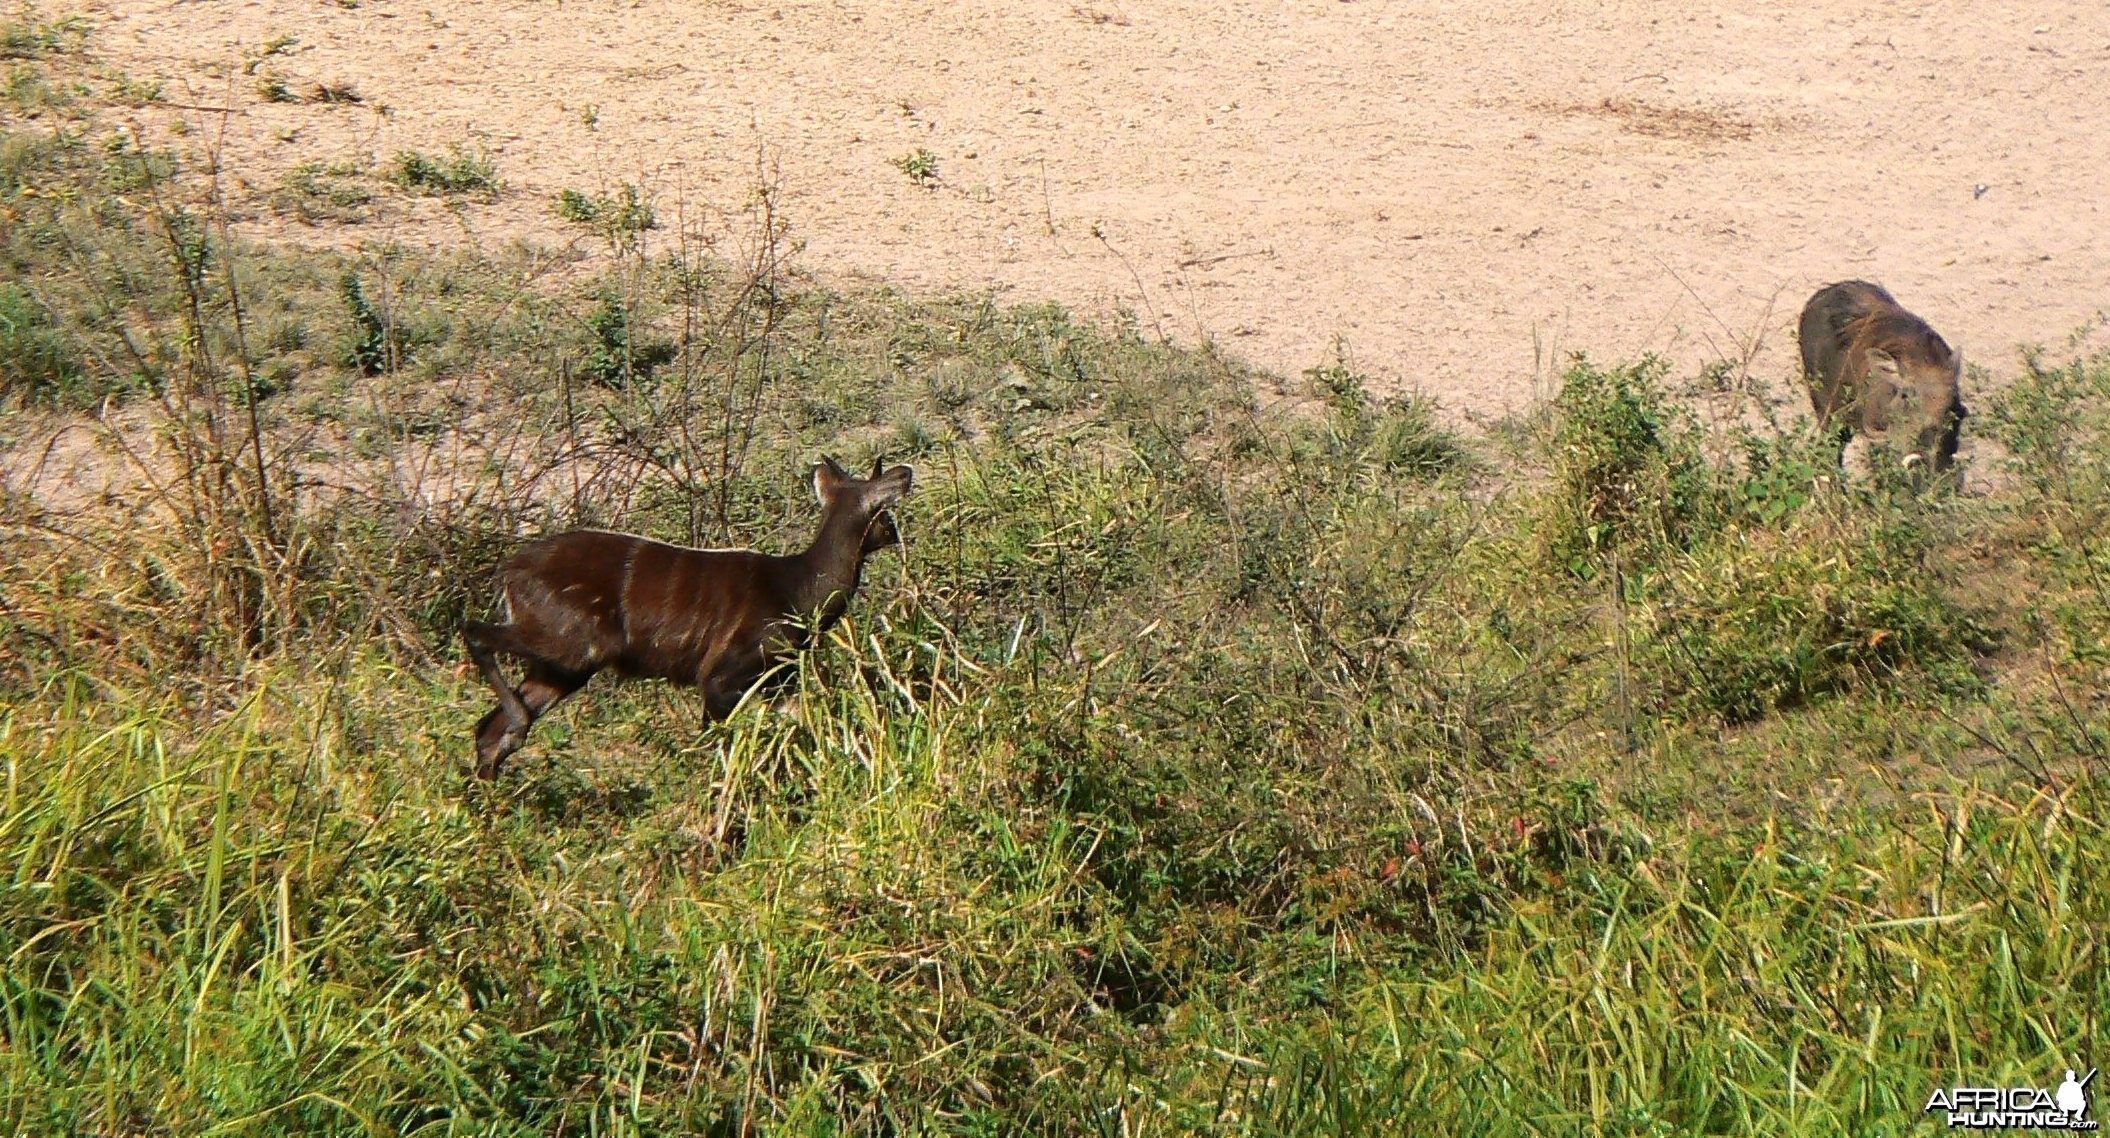 Young forest sitatunga bull vs female warthog